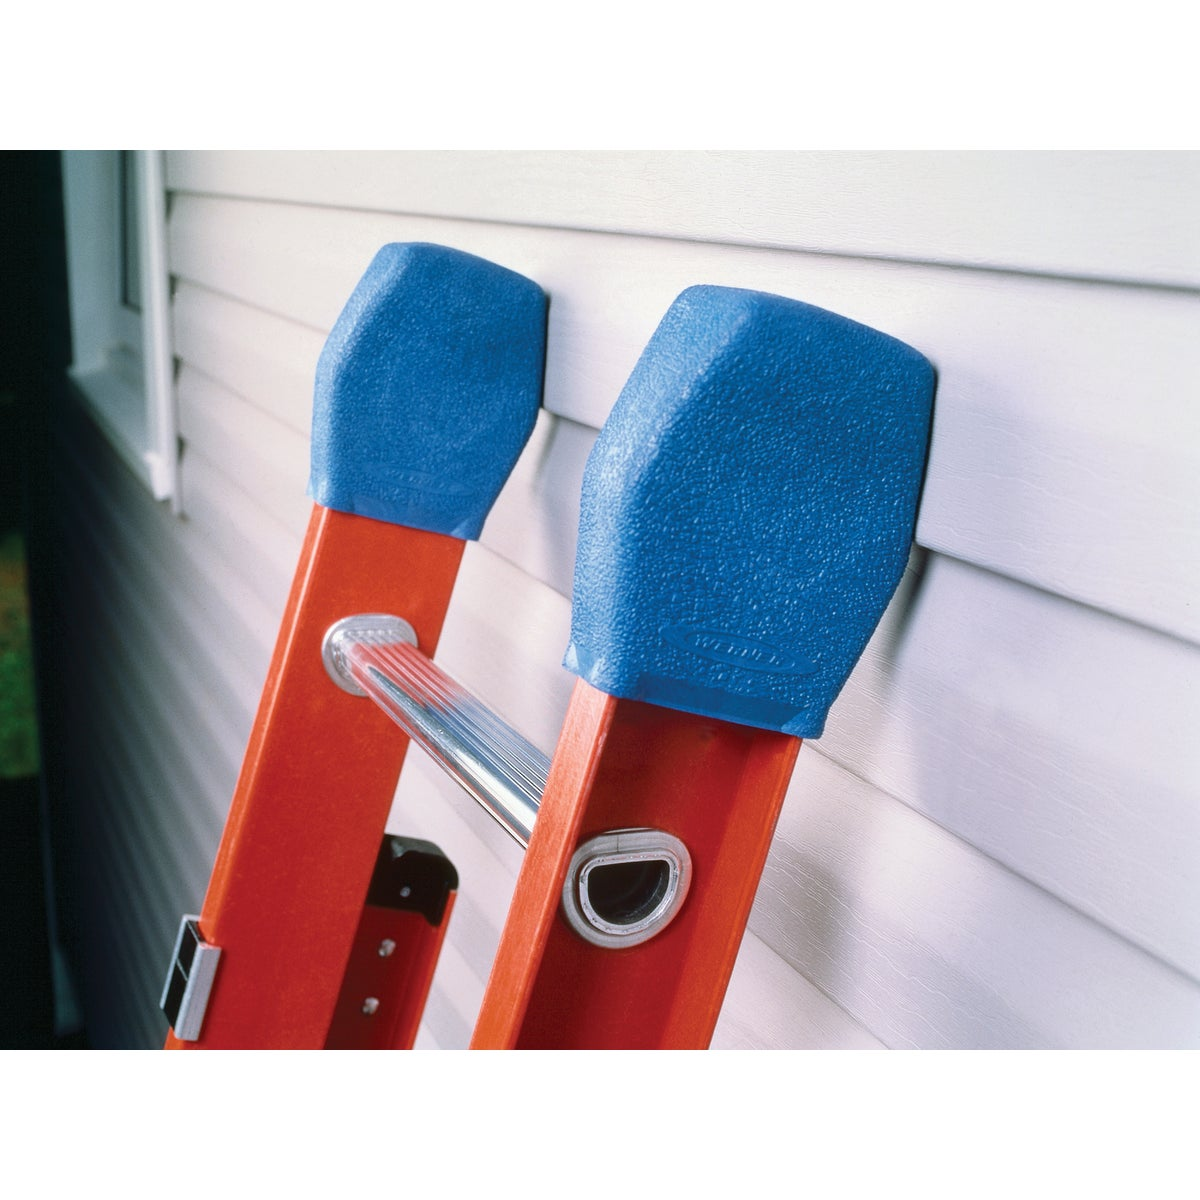 2PK LADDER COVERS - AC19-2 by Werner Ladder